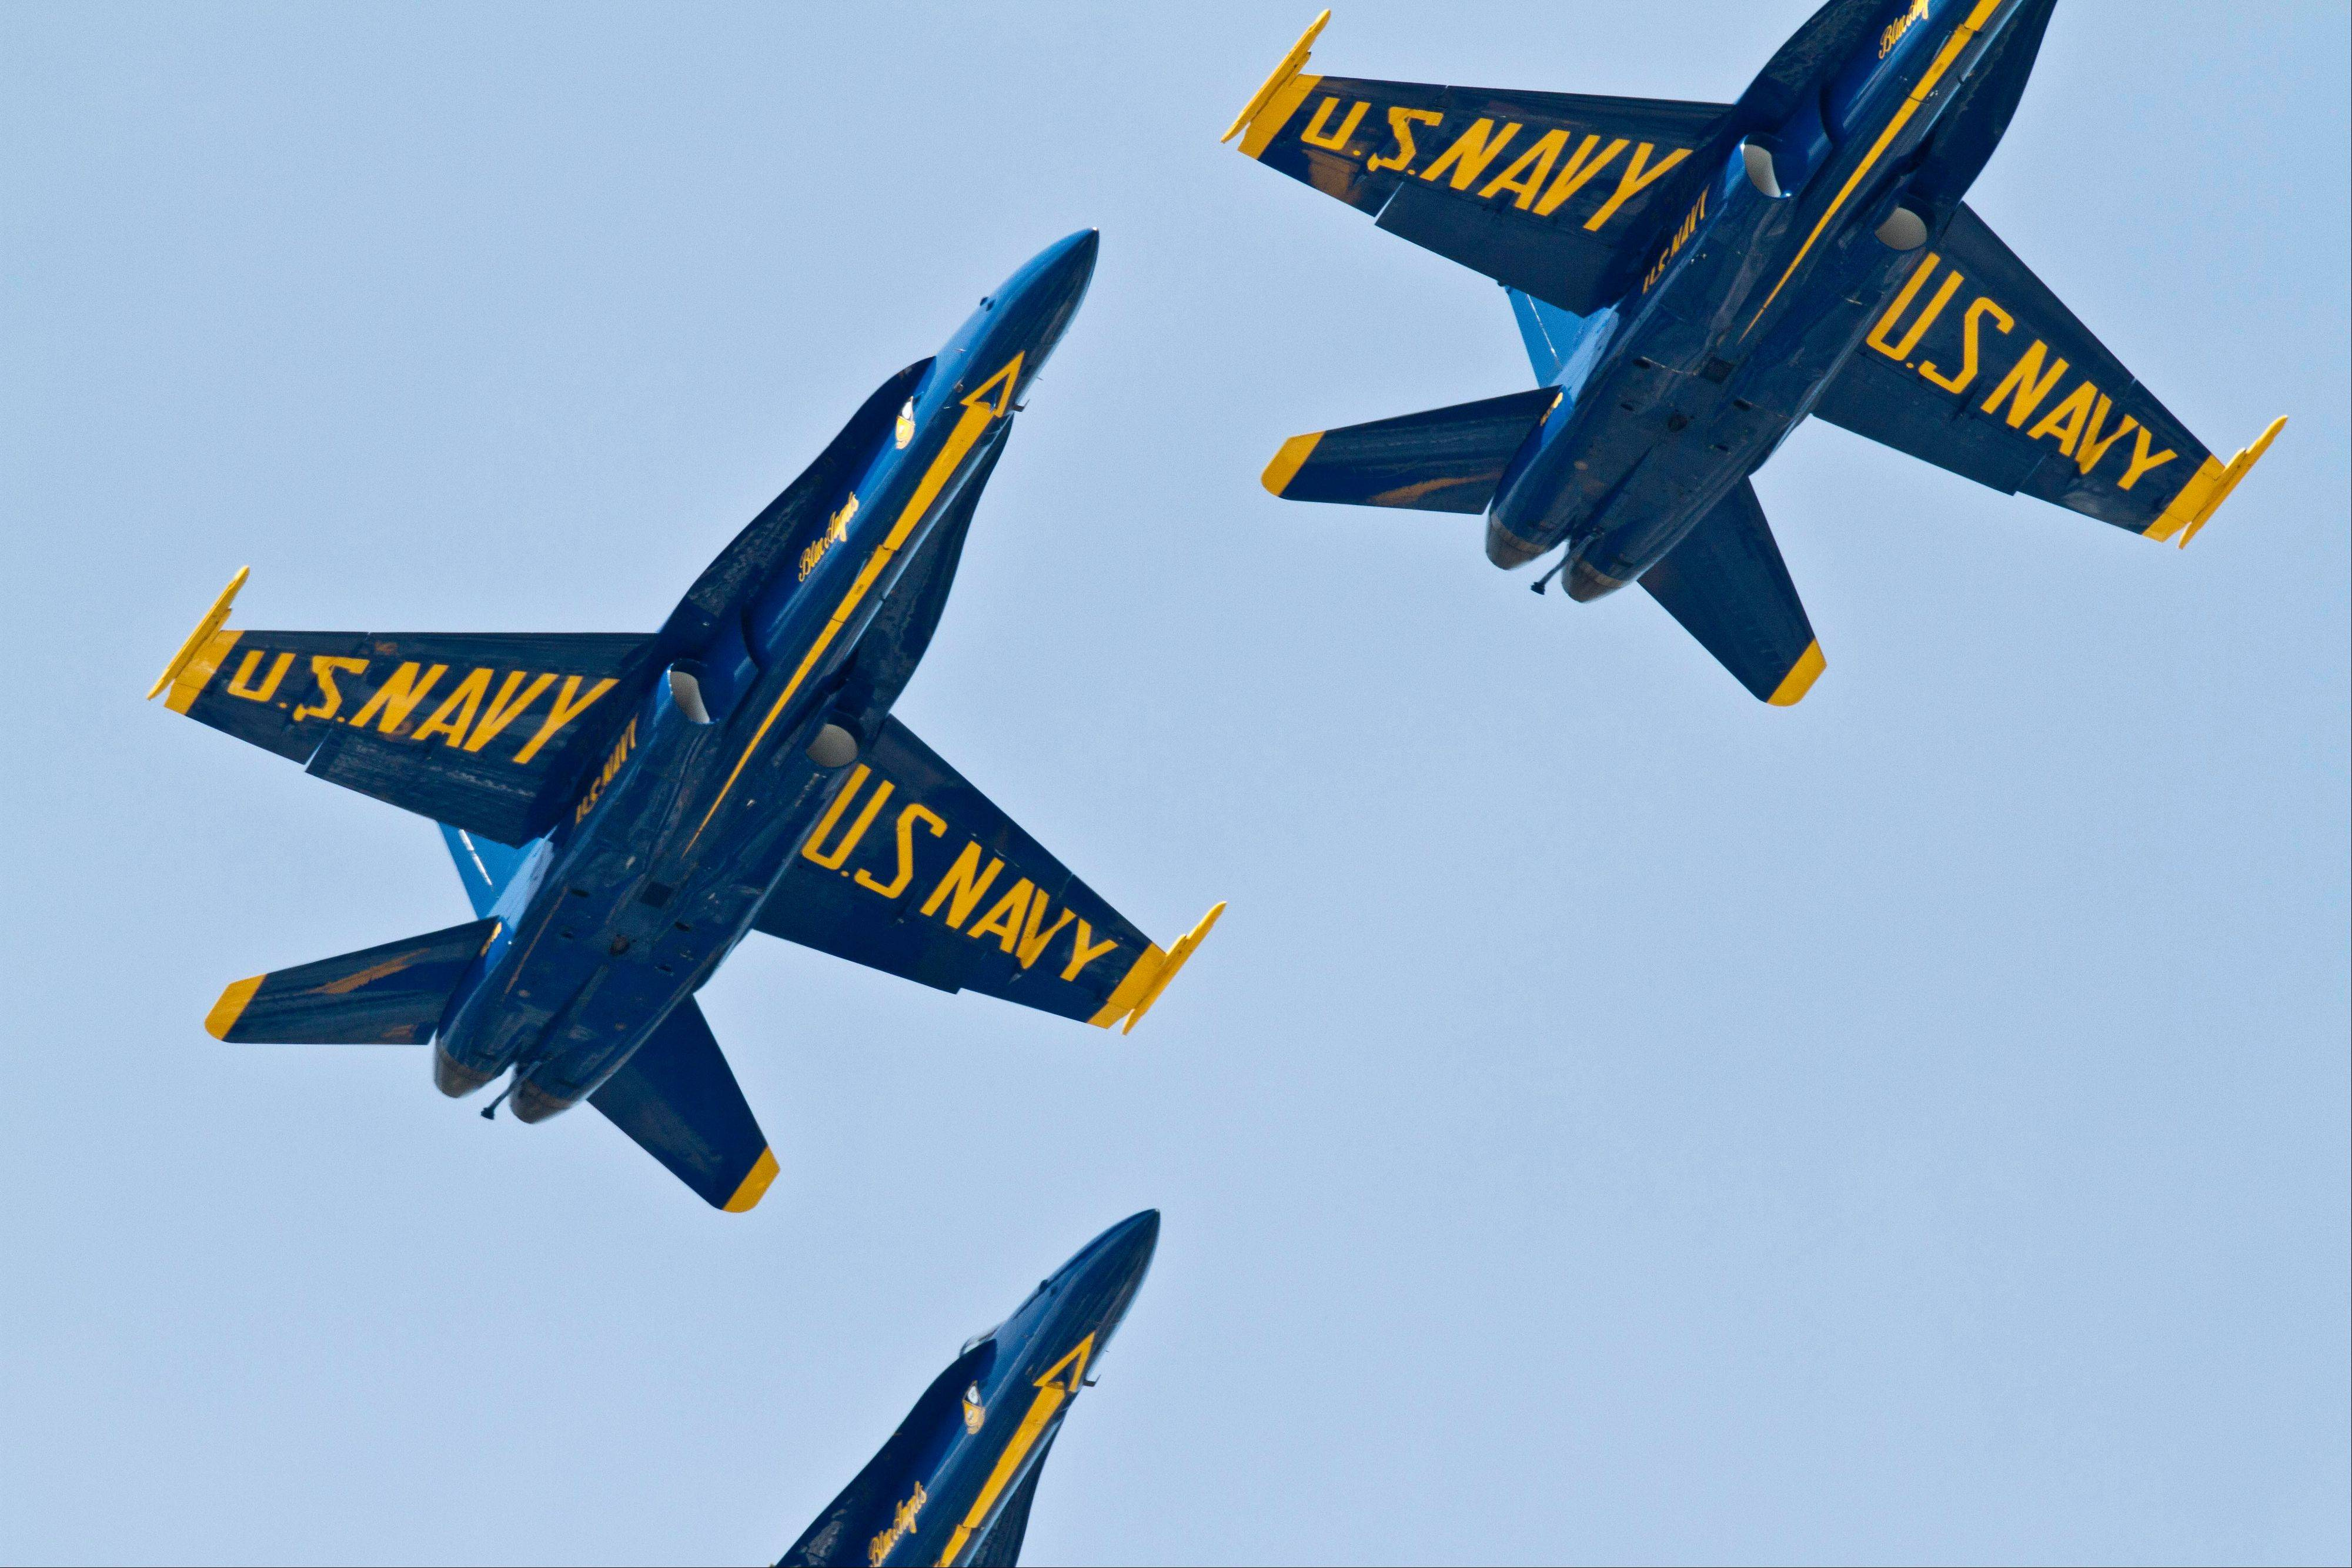 The U.S. Navy Blue Angels perform on the opening day of the Chicago Air and Water Show on Saturday, Aug. 18, 2012 in Chicago.